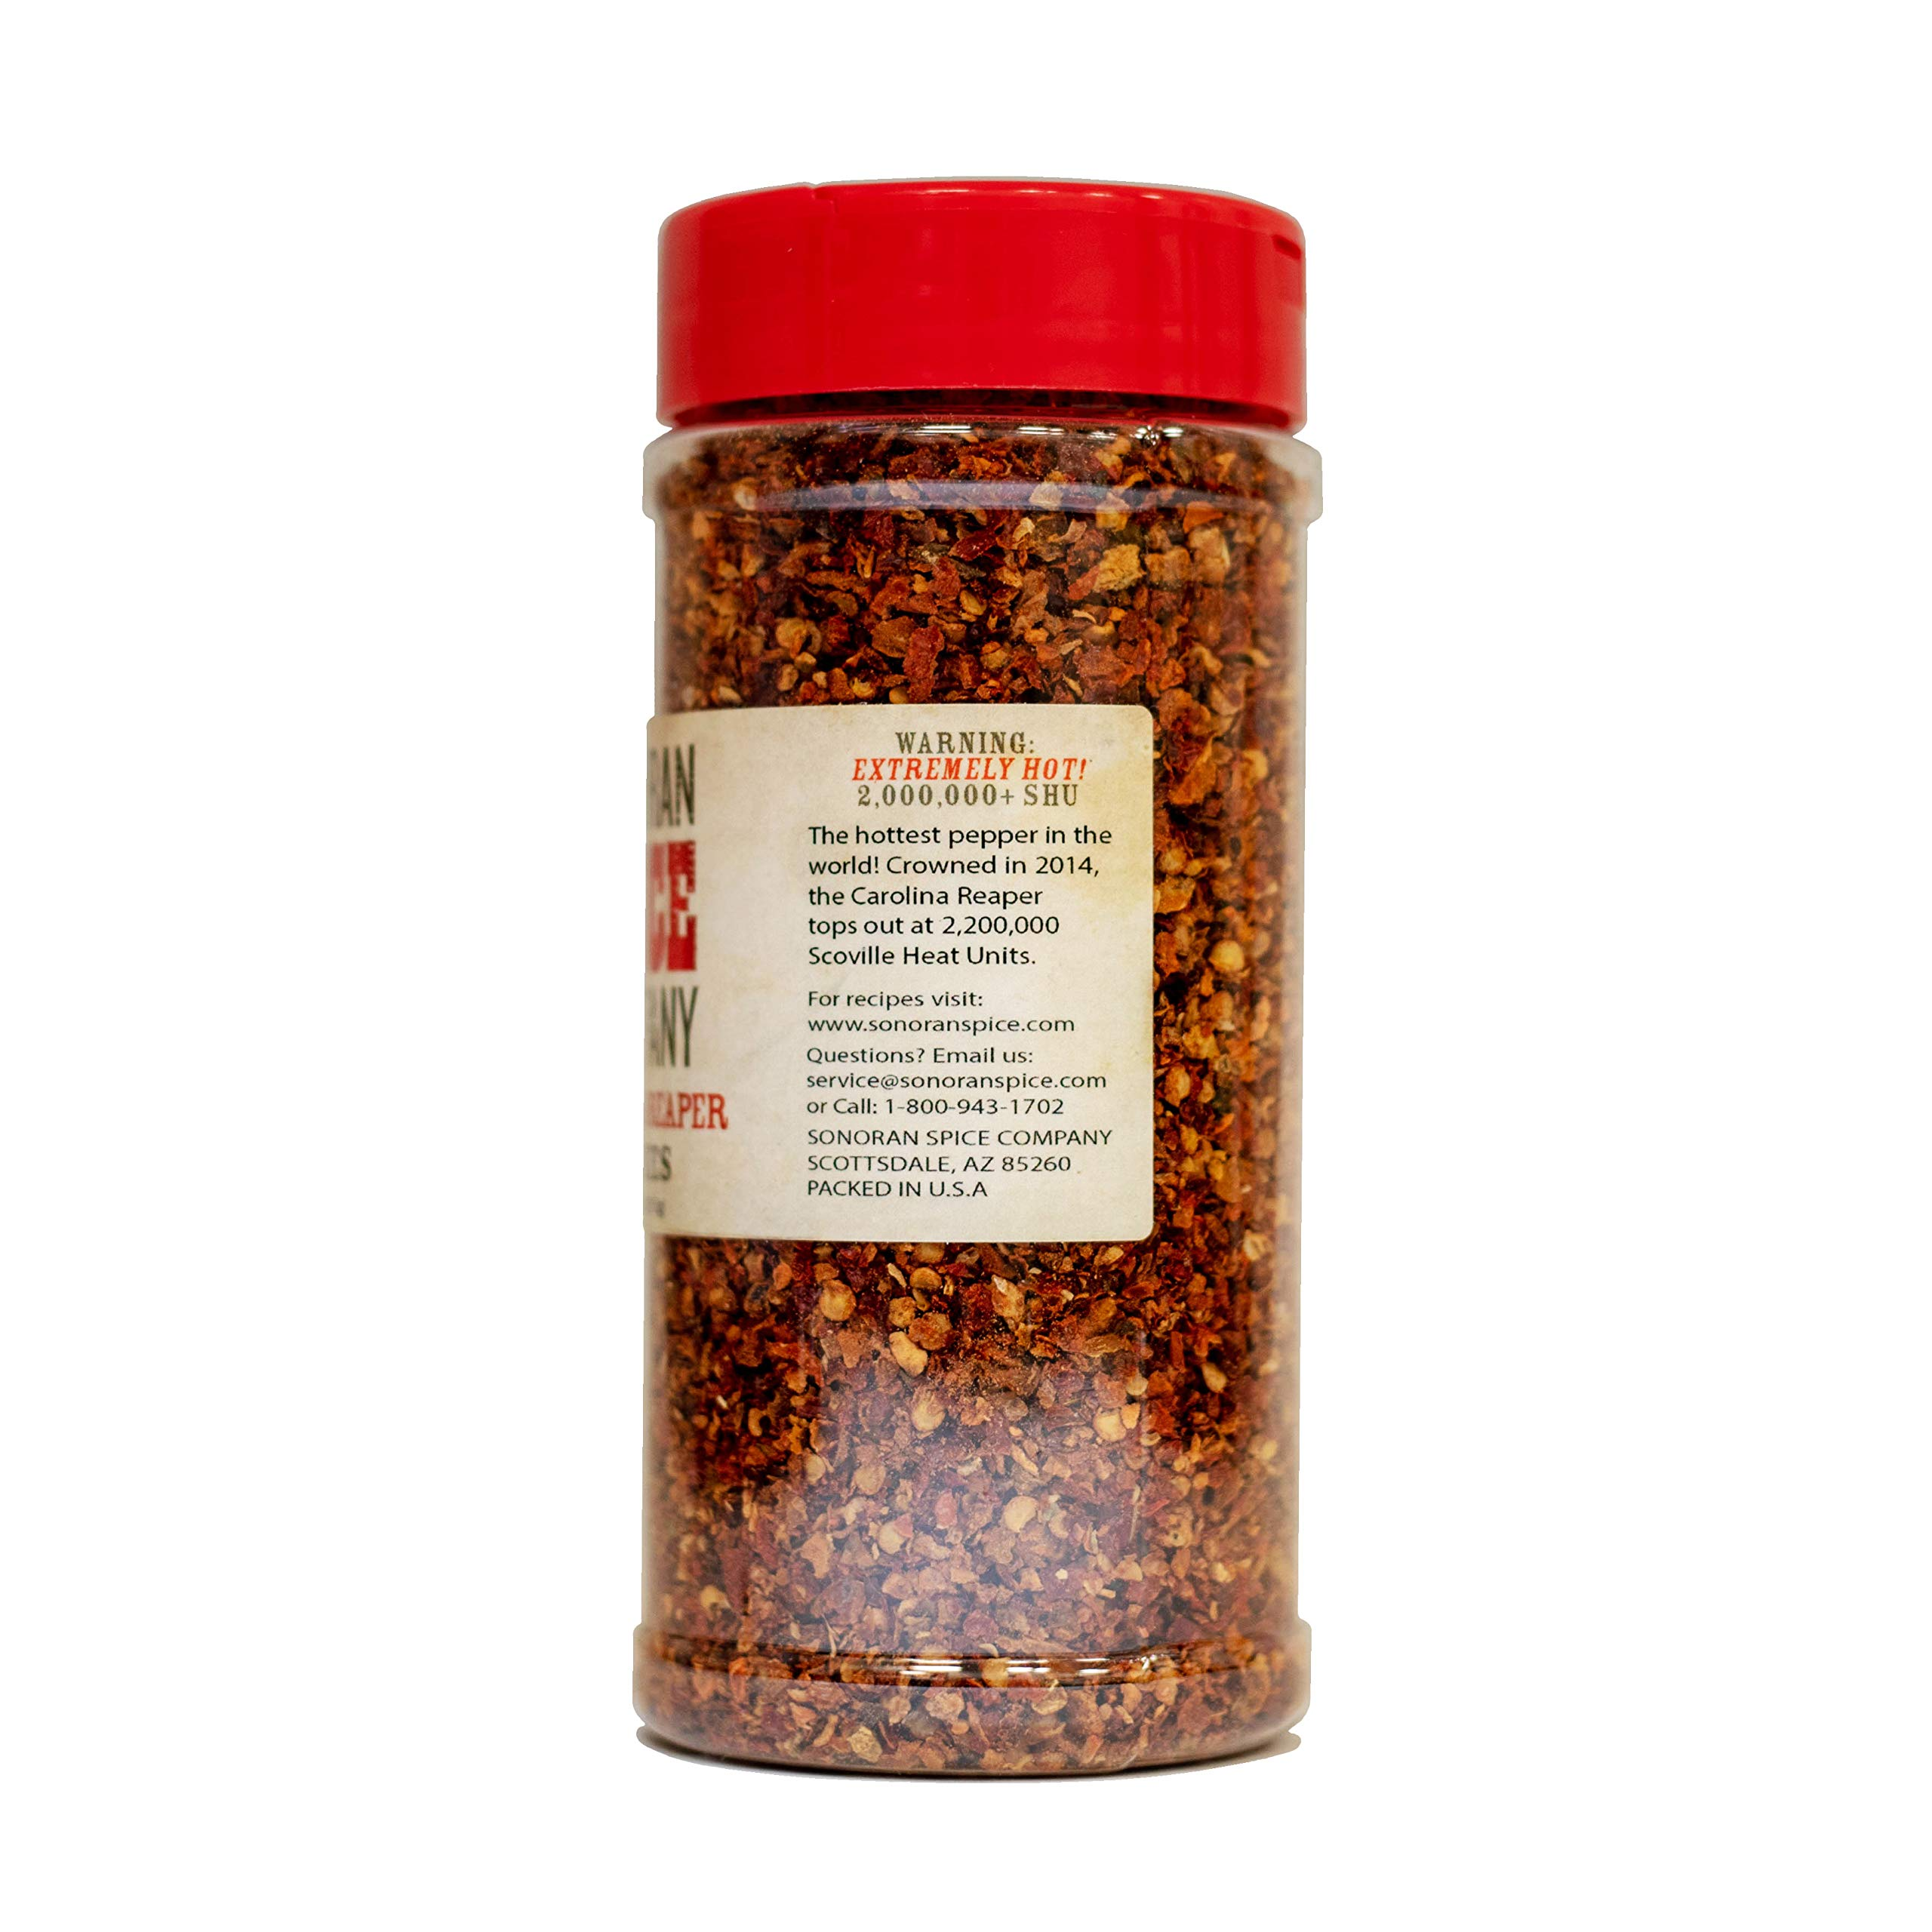 Carolina Reaper Flakes (4 Oz) by Sonoran Spice (Image #4)